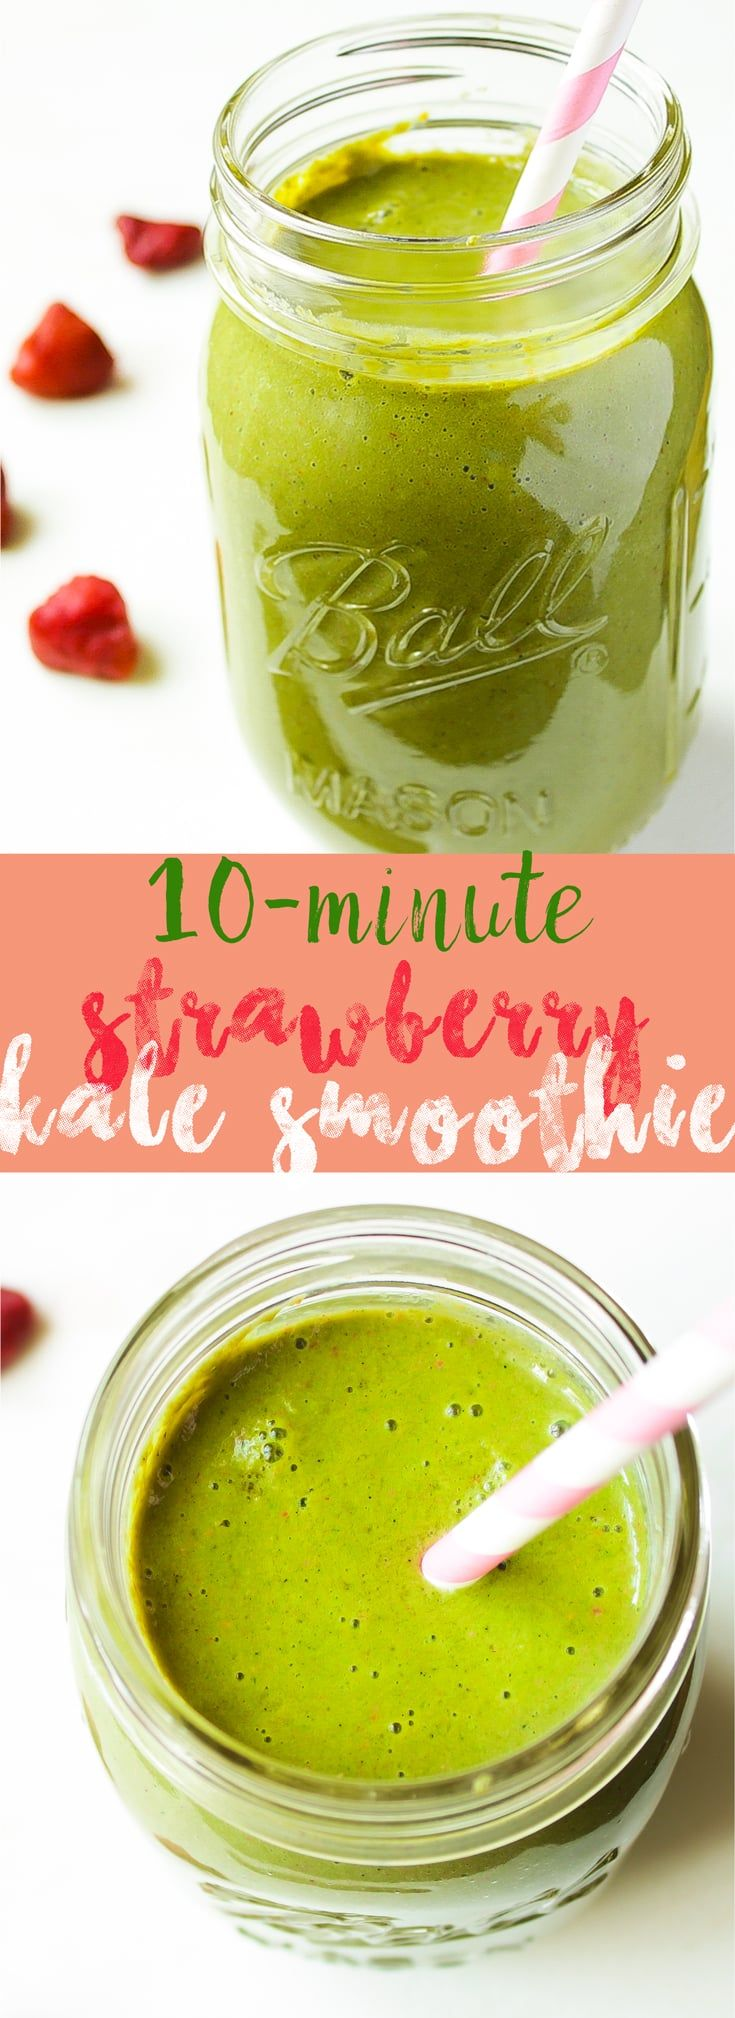 This delicious and super charged nutritious Strawberry & Kale Smoothie is made in 10 minutes and so delicious! via http://jessicainthekitchen.com